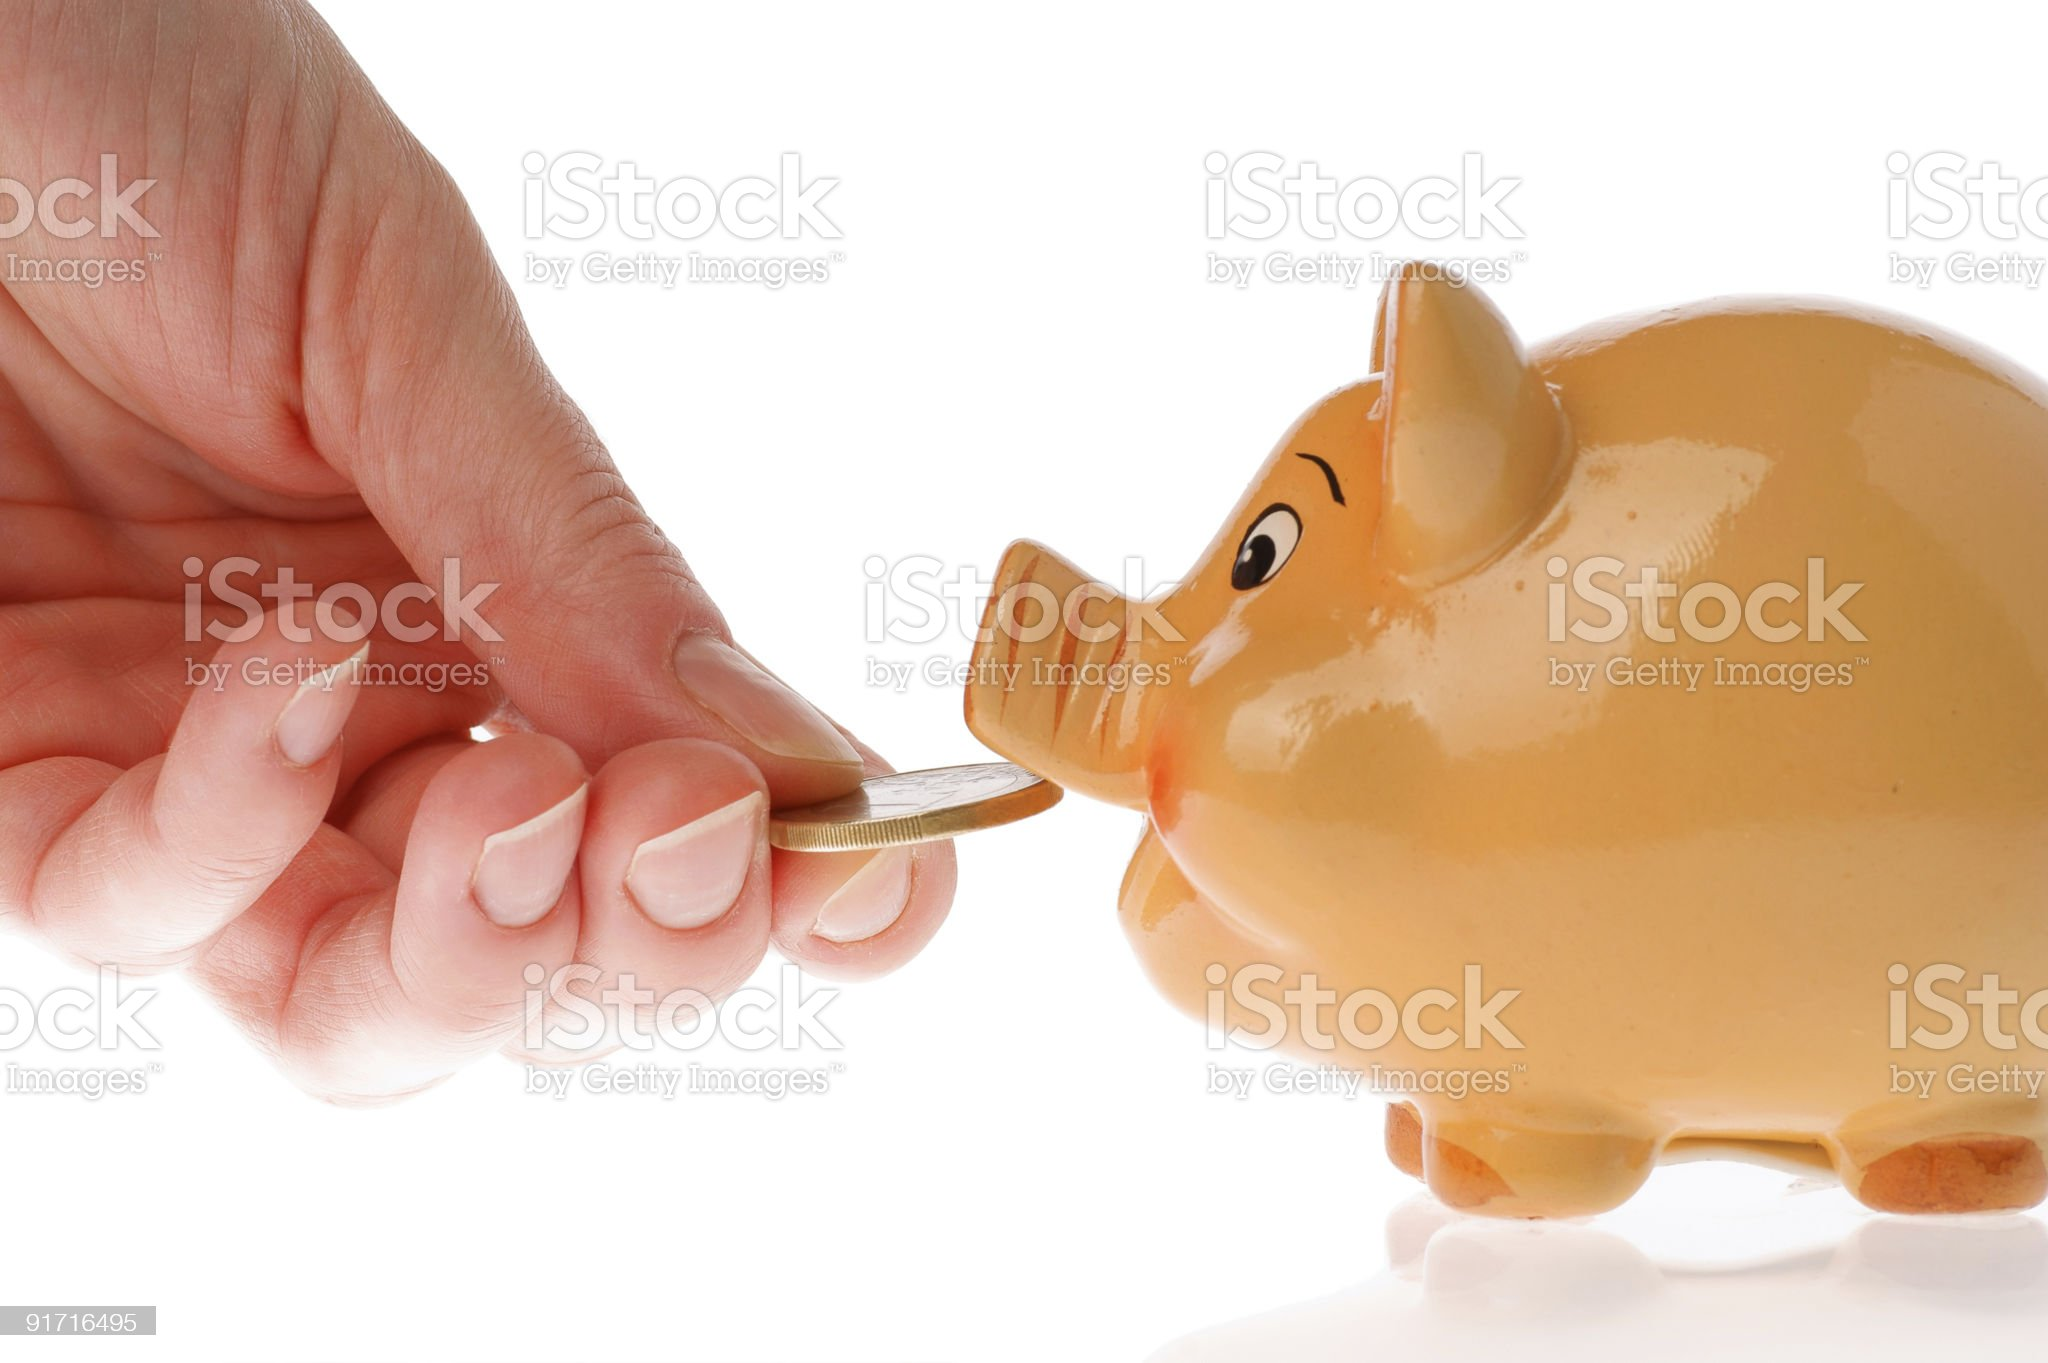 Piggy bank, hand and currency royalty-free stock photo